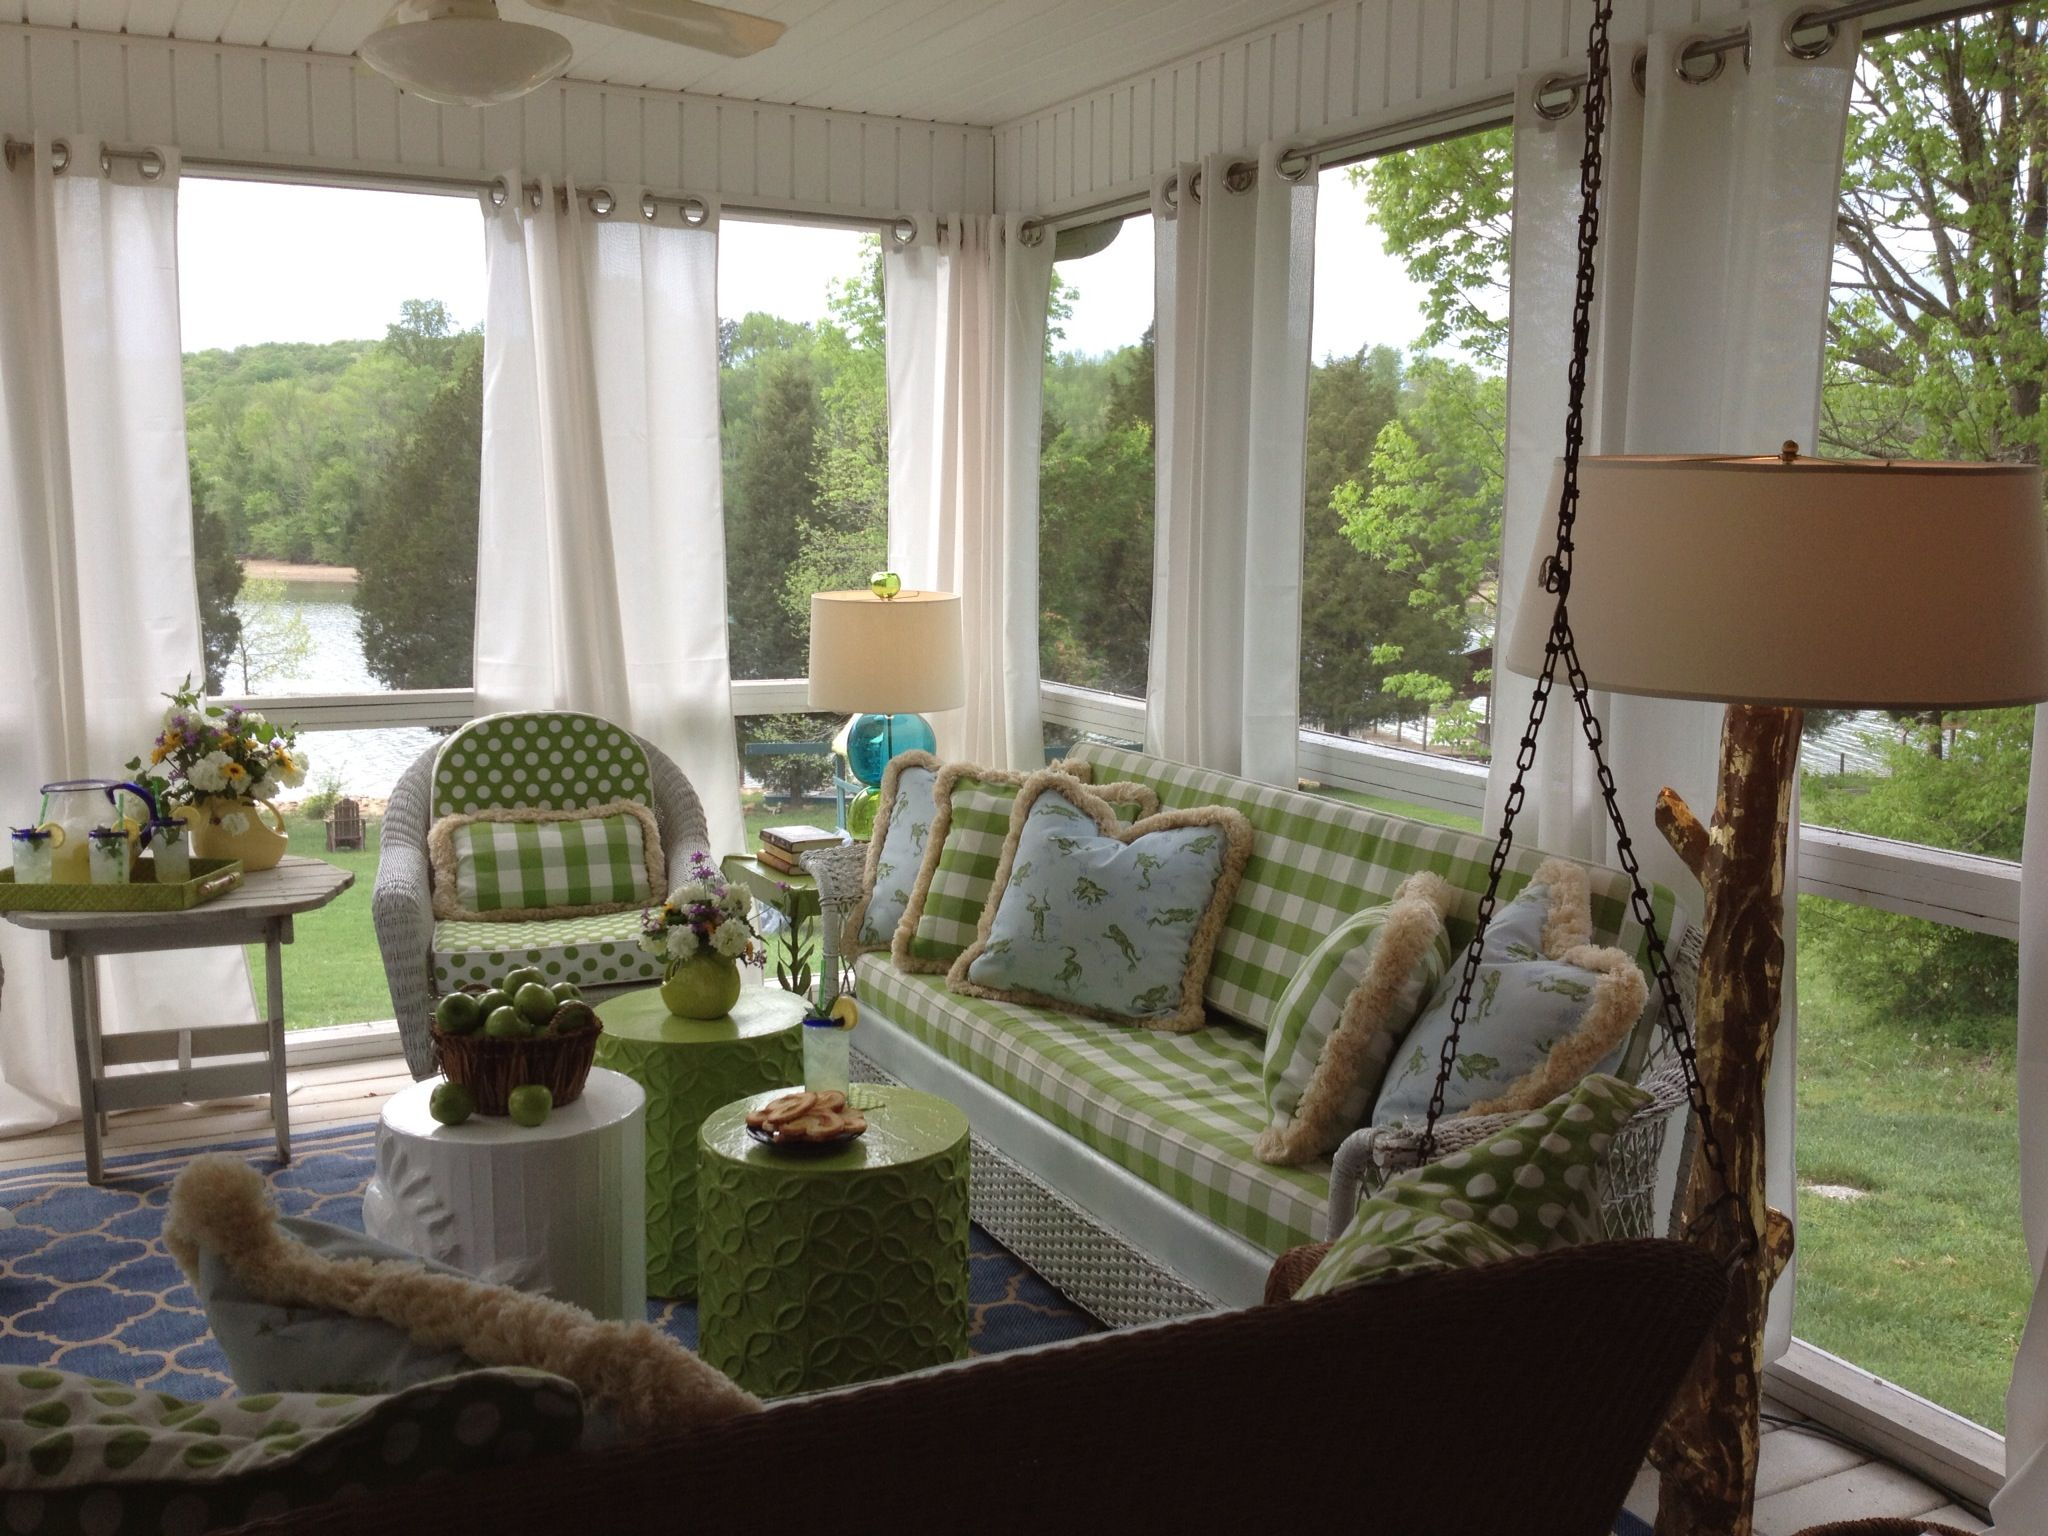 Window ideas for a sunroom  screened in porch by ashley ford interiors with lots of stray dog